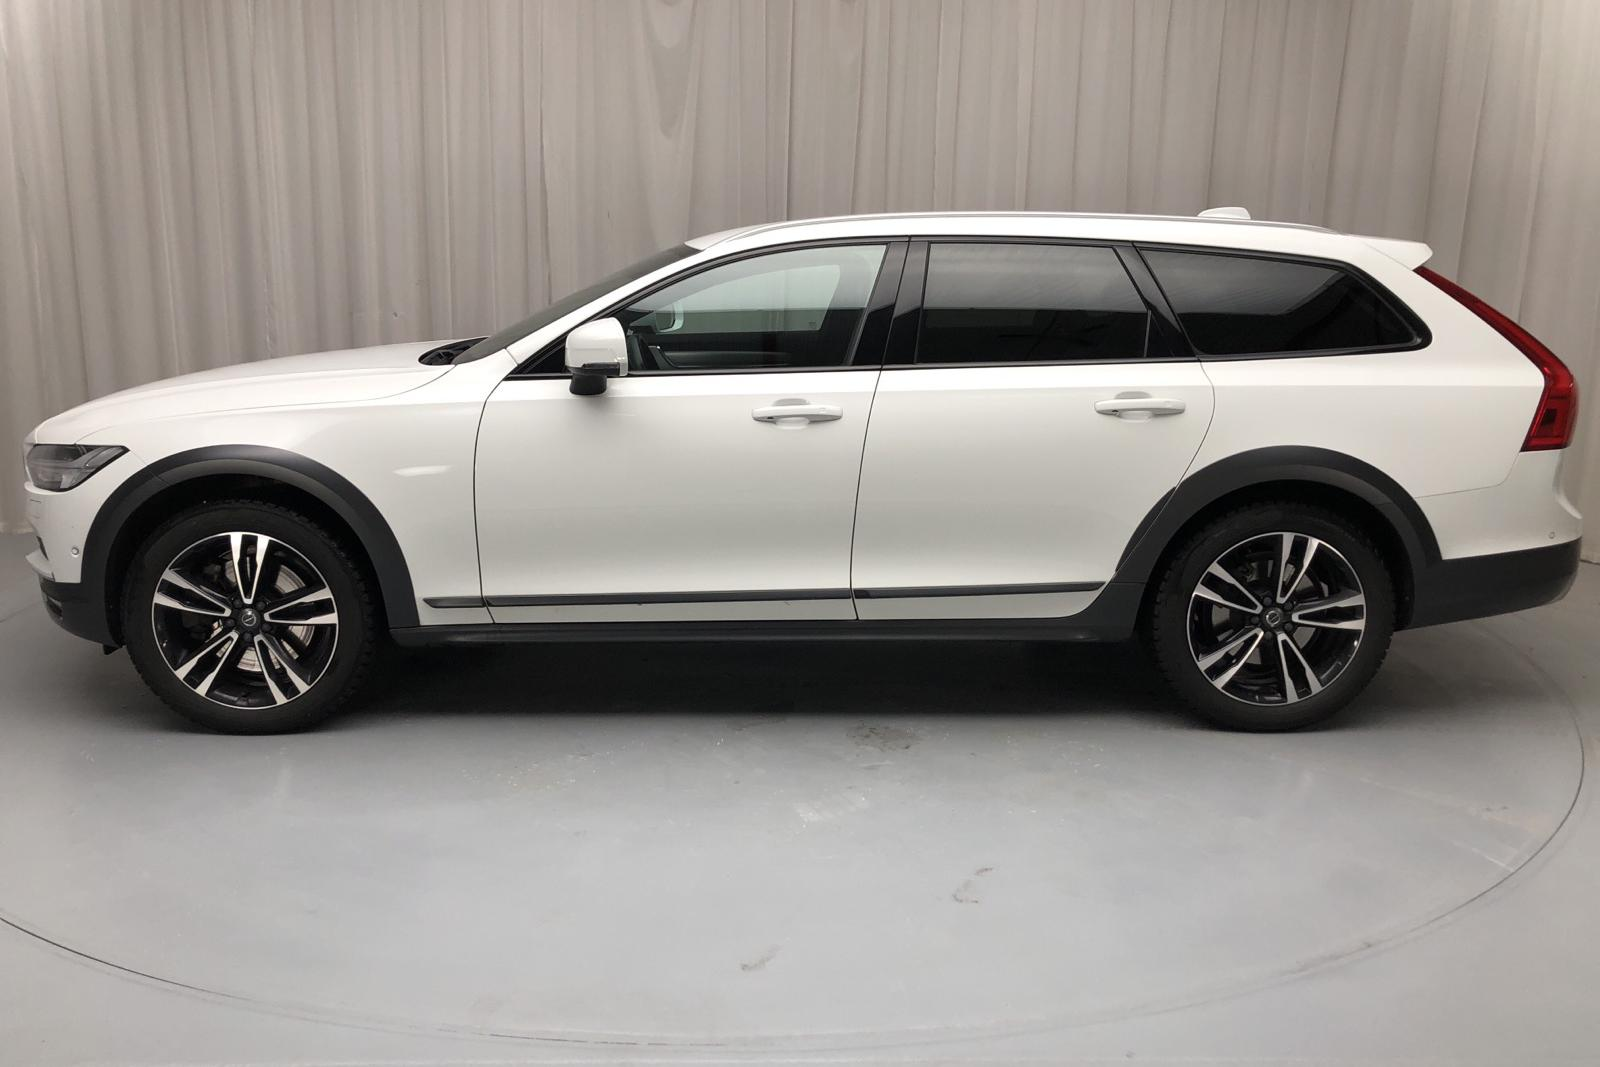 Volvo V90 D5 Cross Country AWD (235hk) - 11 054 mil - Automat - vit - 2018